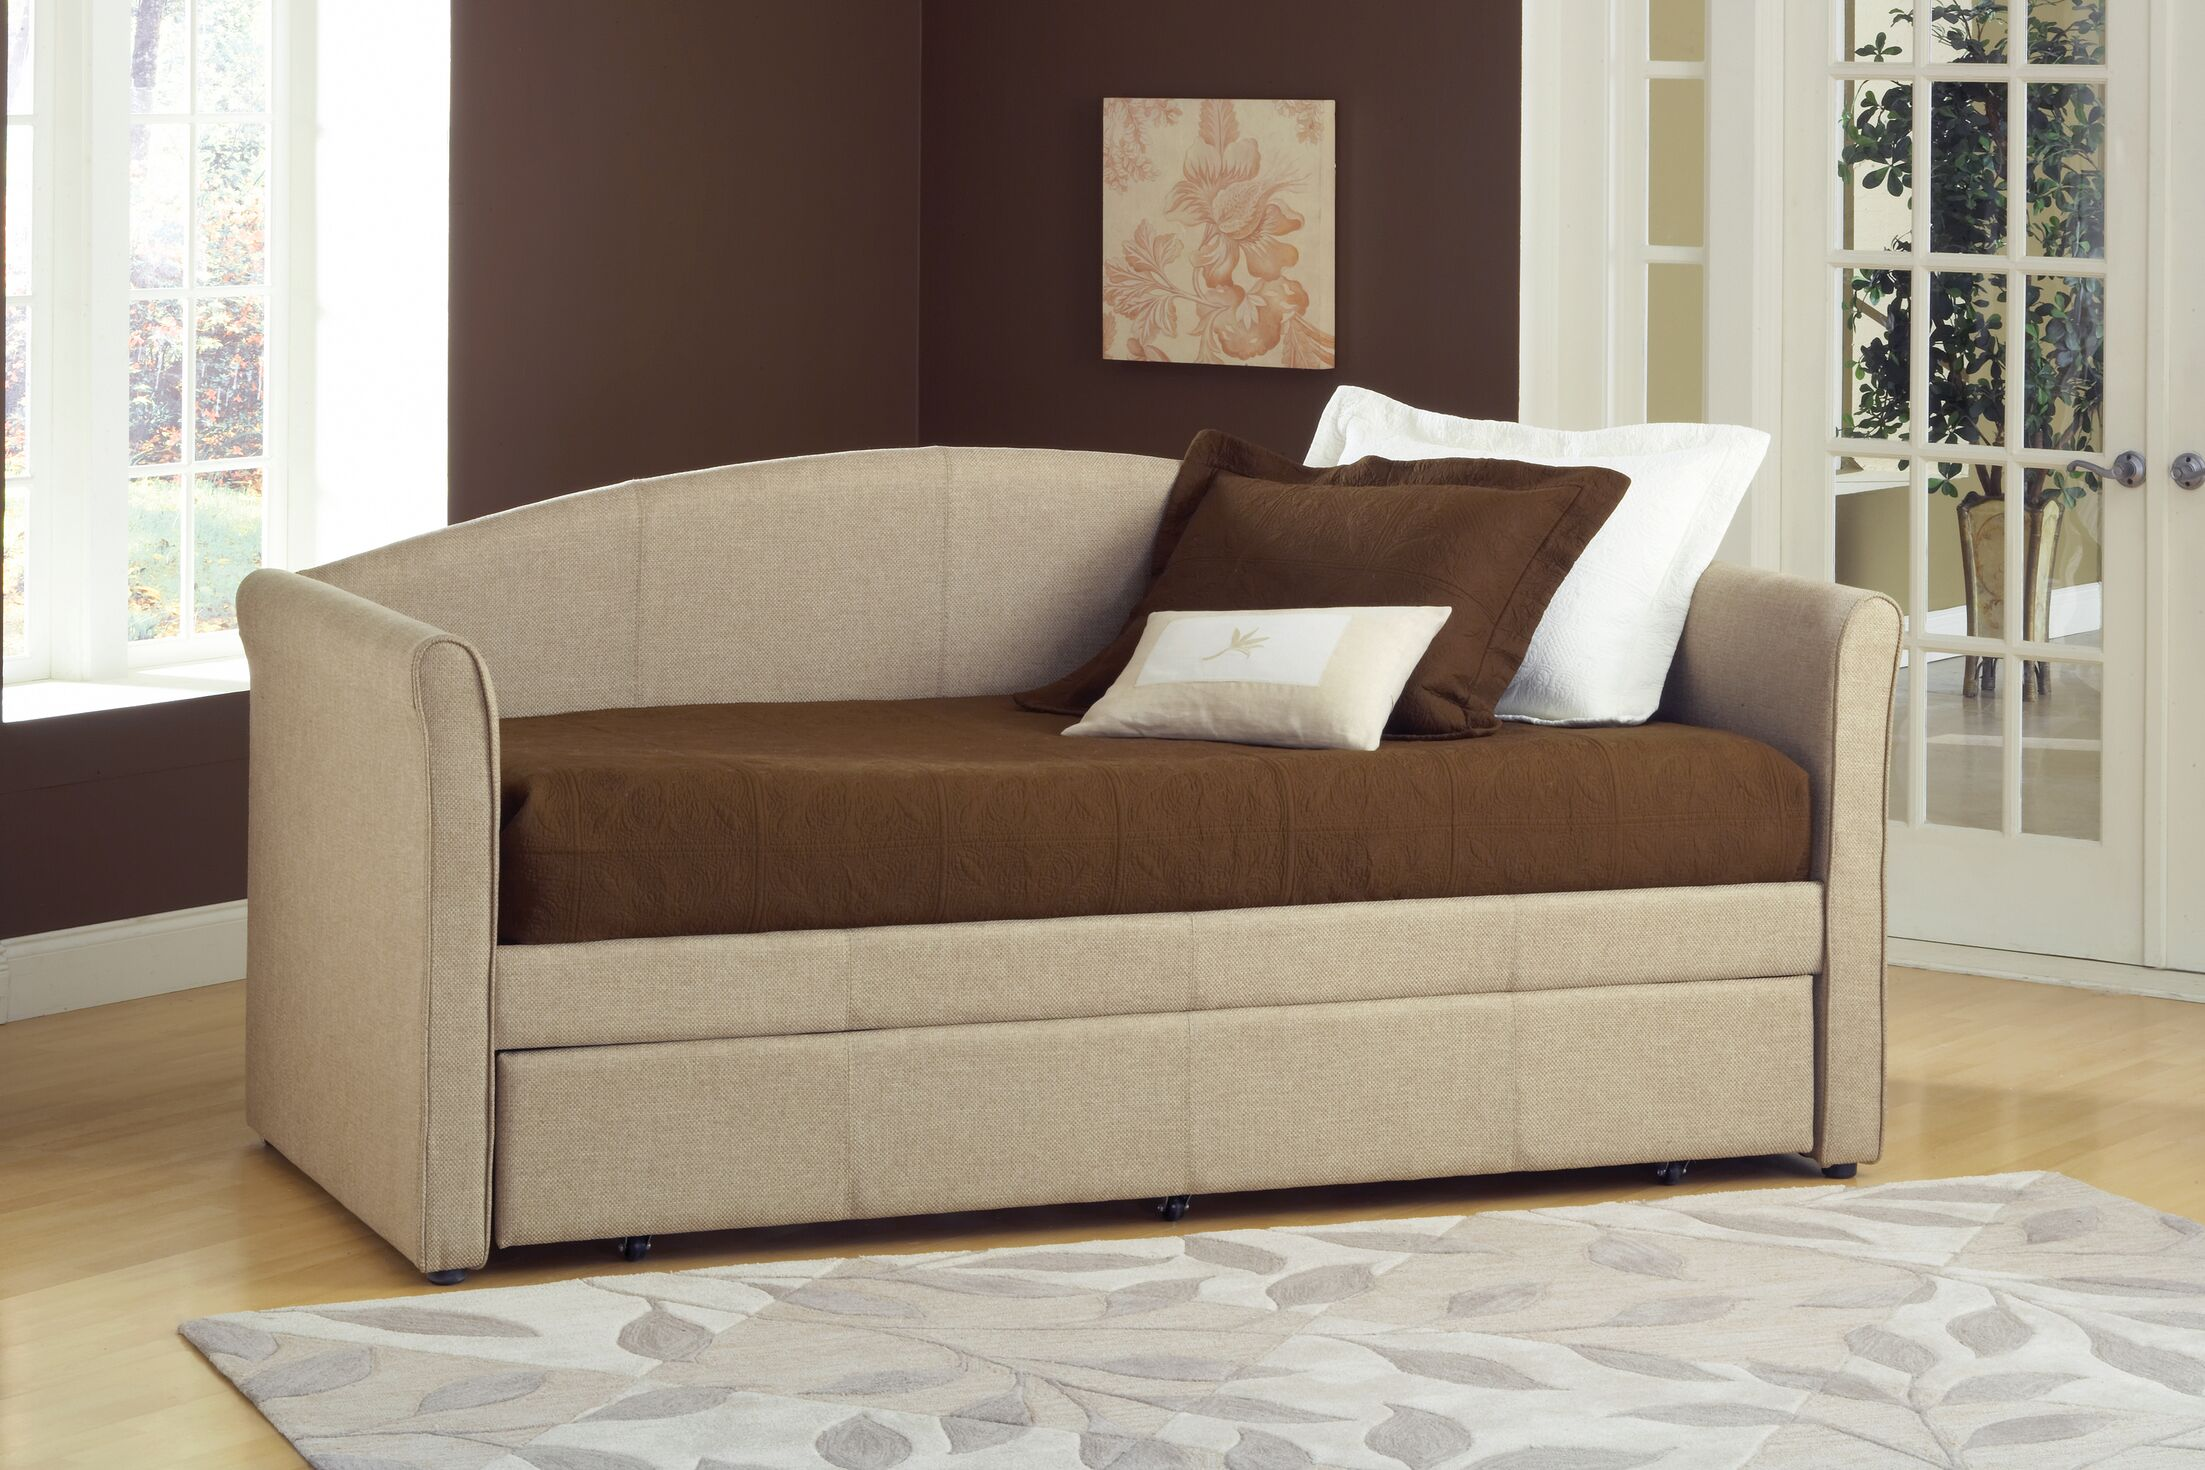 Siesta Daybed with Trundle Accessories: No Trundle